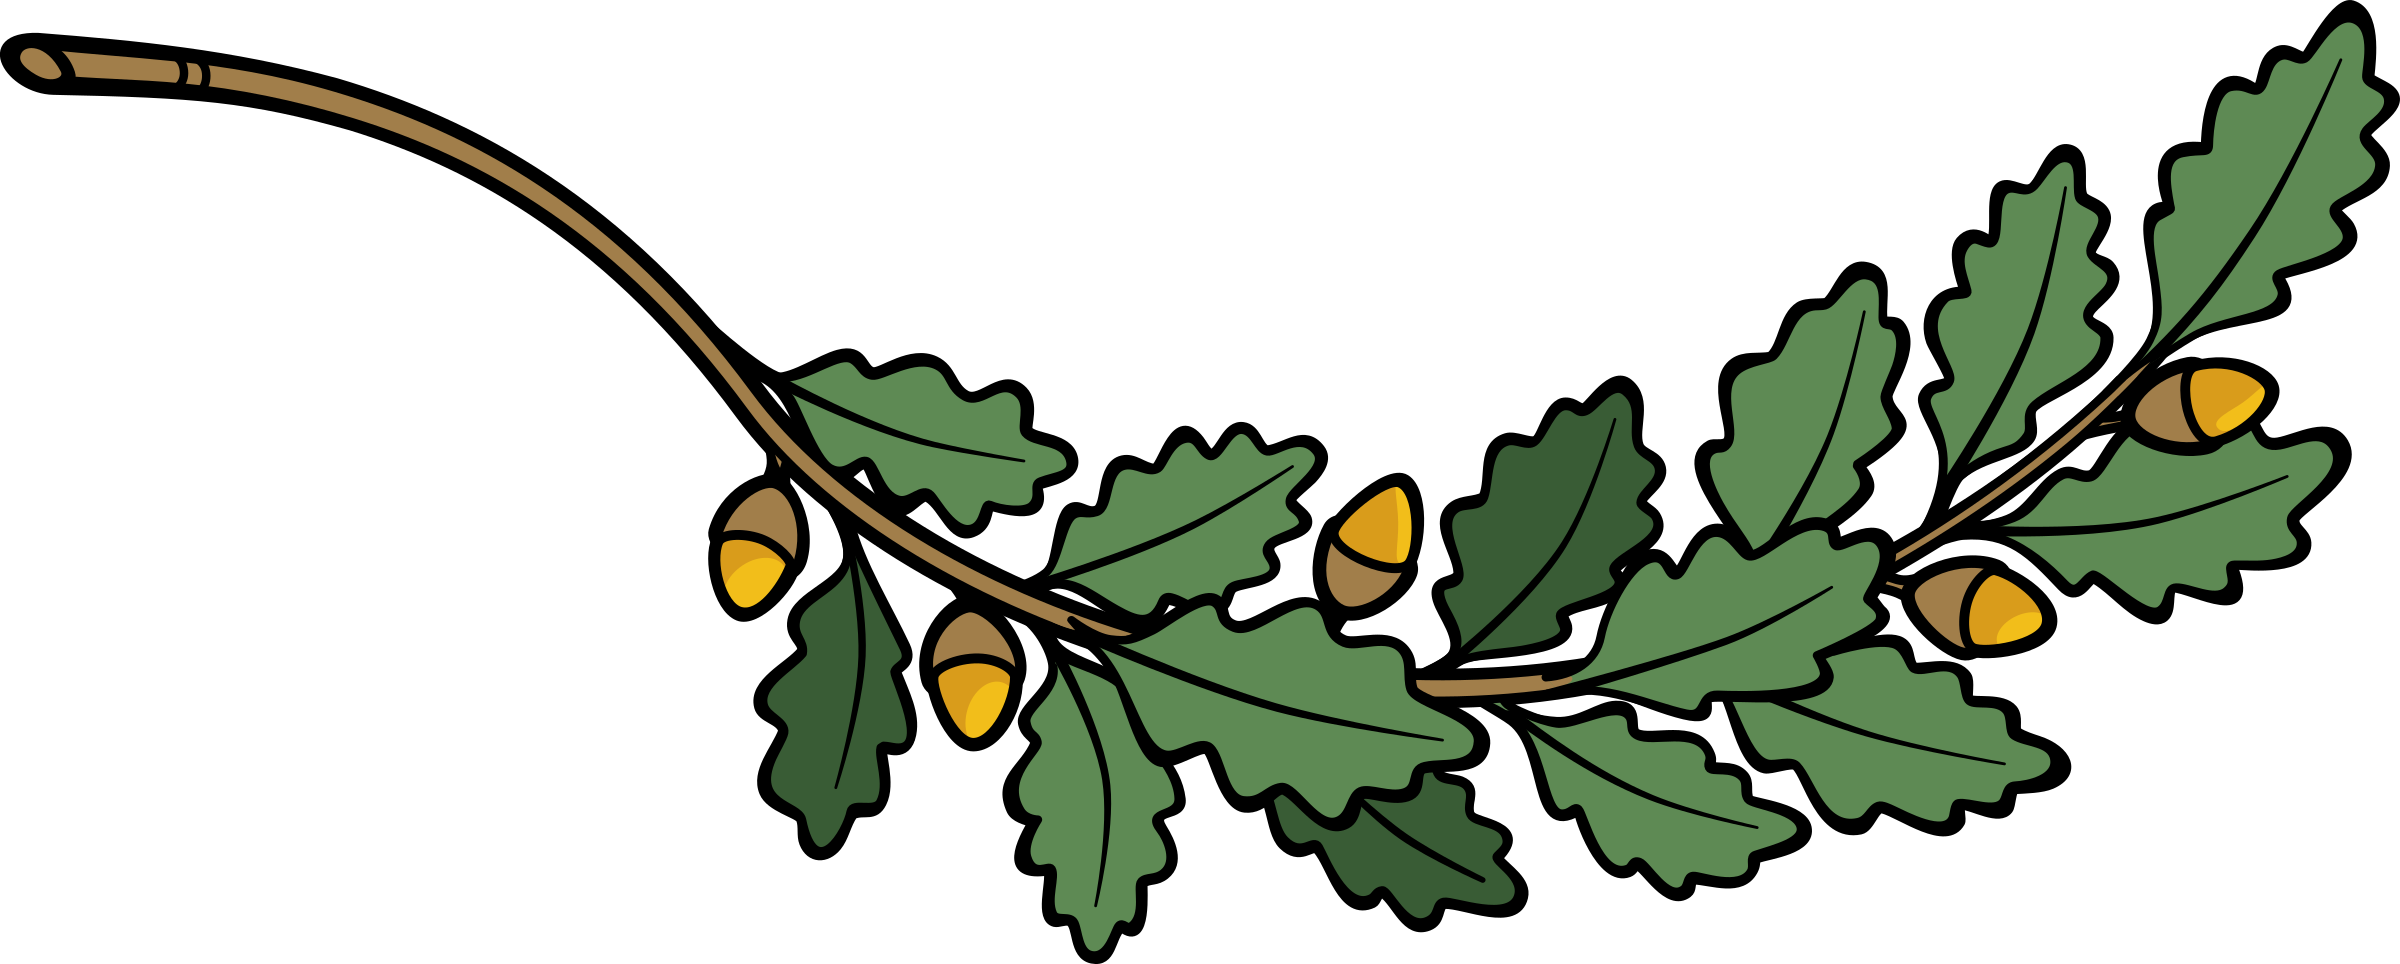 2400x964 Branch Clipart Oak Branch